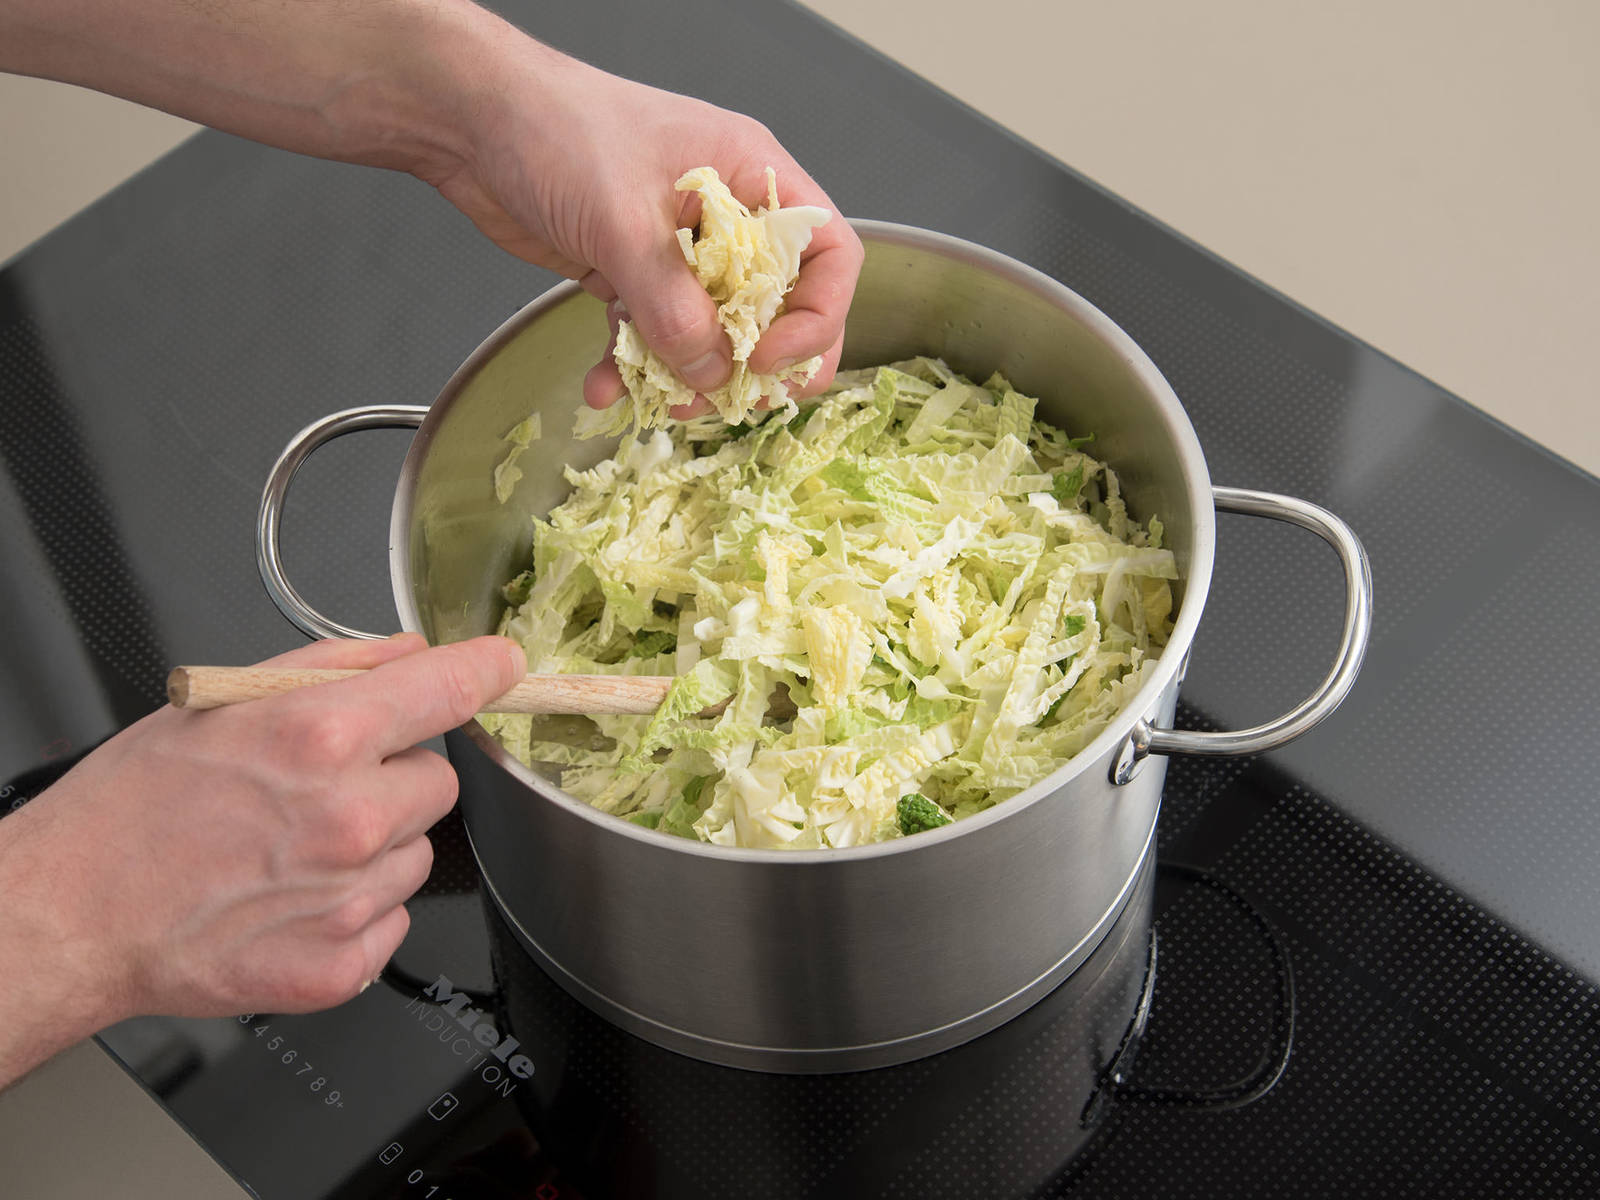 Sauté garlic with some oil in a large pot. Add cabbage, season with salt and pepper, and cook for approx. 10 min.